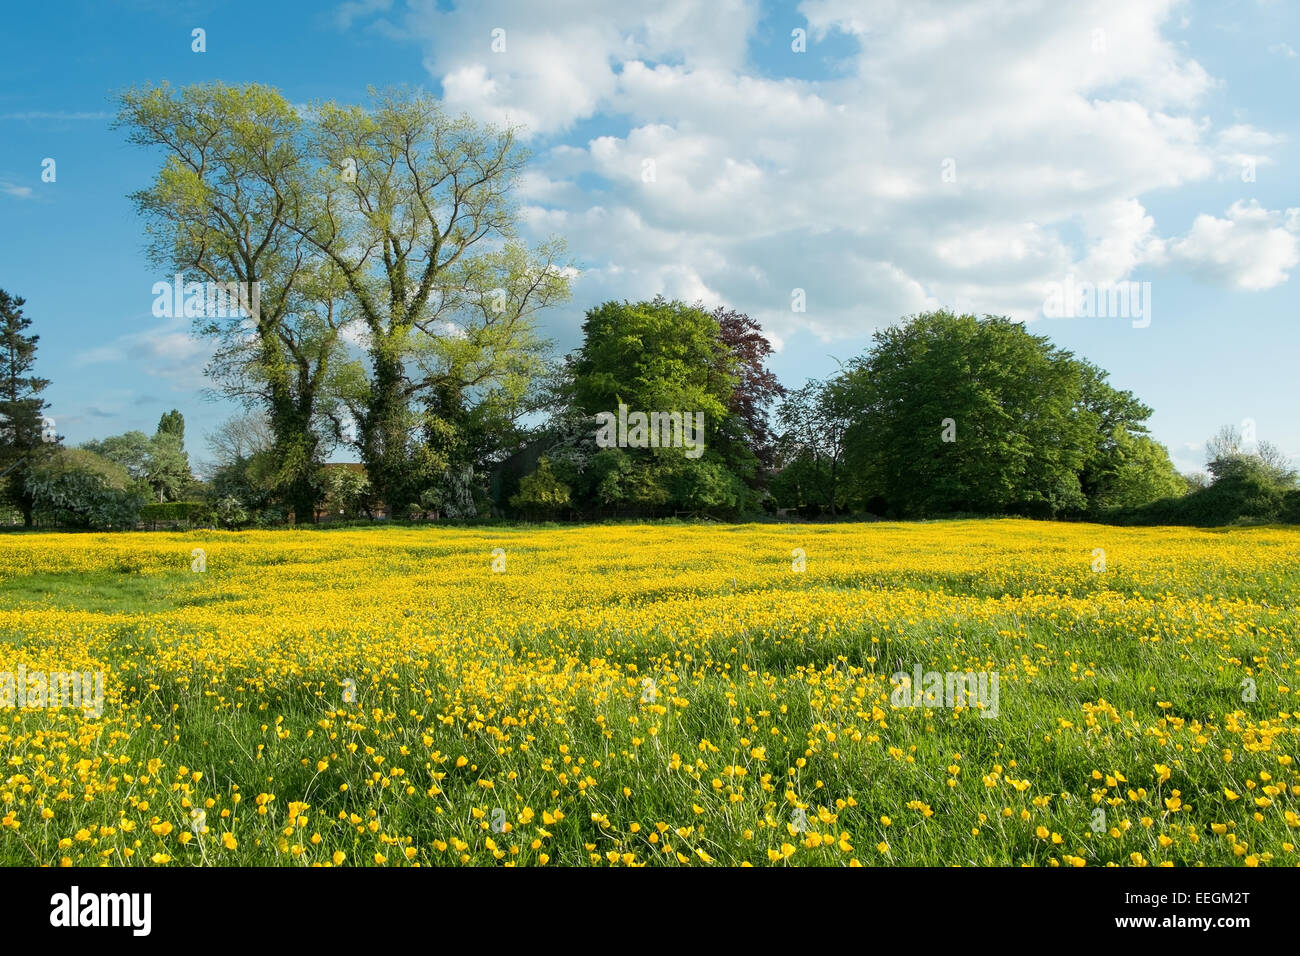 A field full of buttercups with trees during summer, in Oxfordshire, UK. - Stock Image